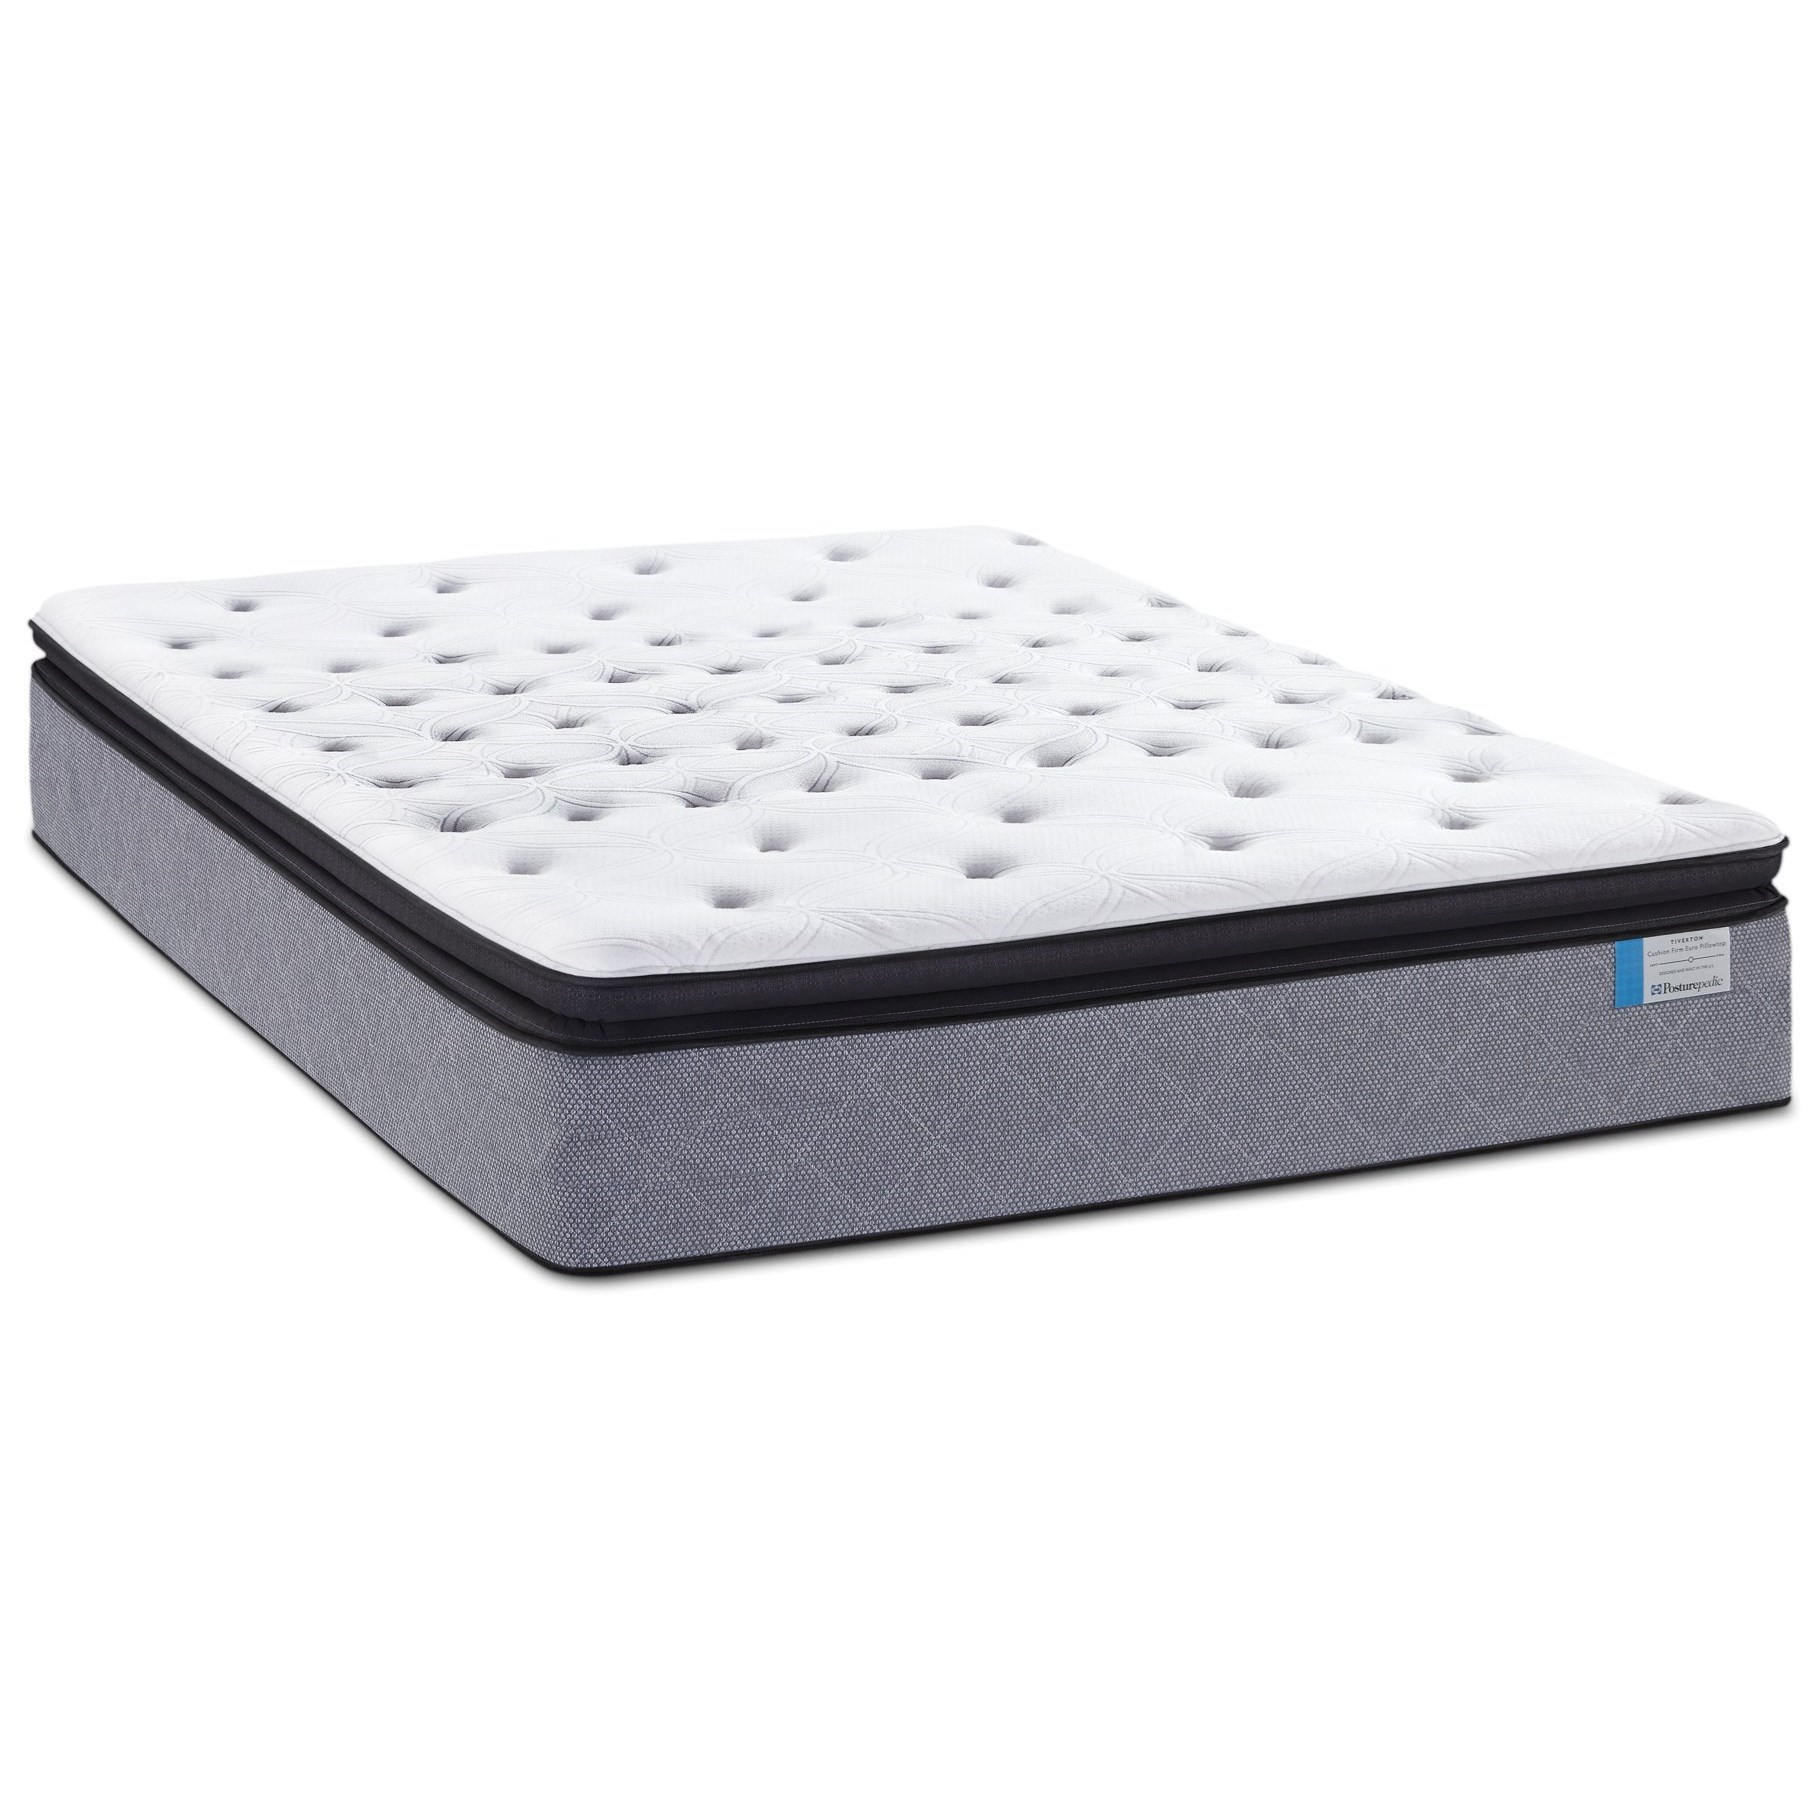 Sealy Posturepedic A2 Twin EPT Plush Mattress - Item Number: PlushEPT-T